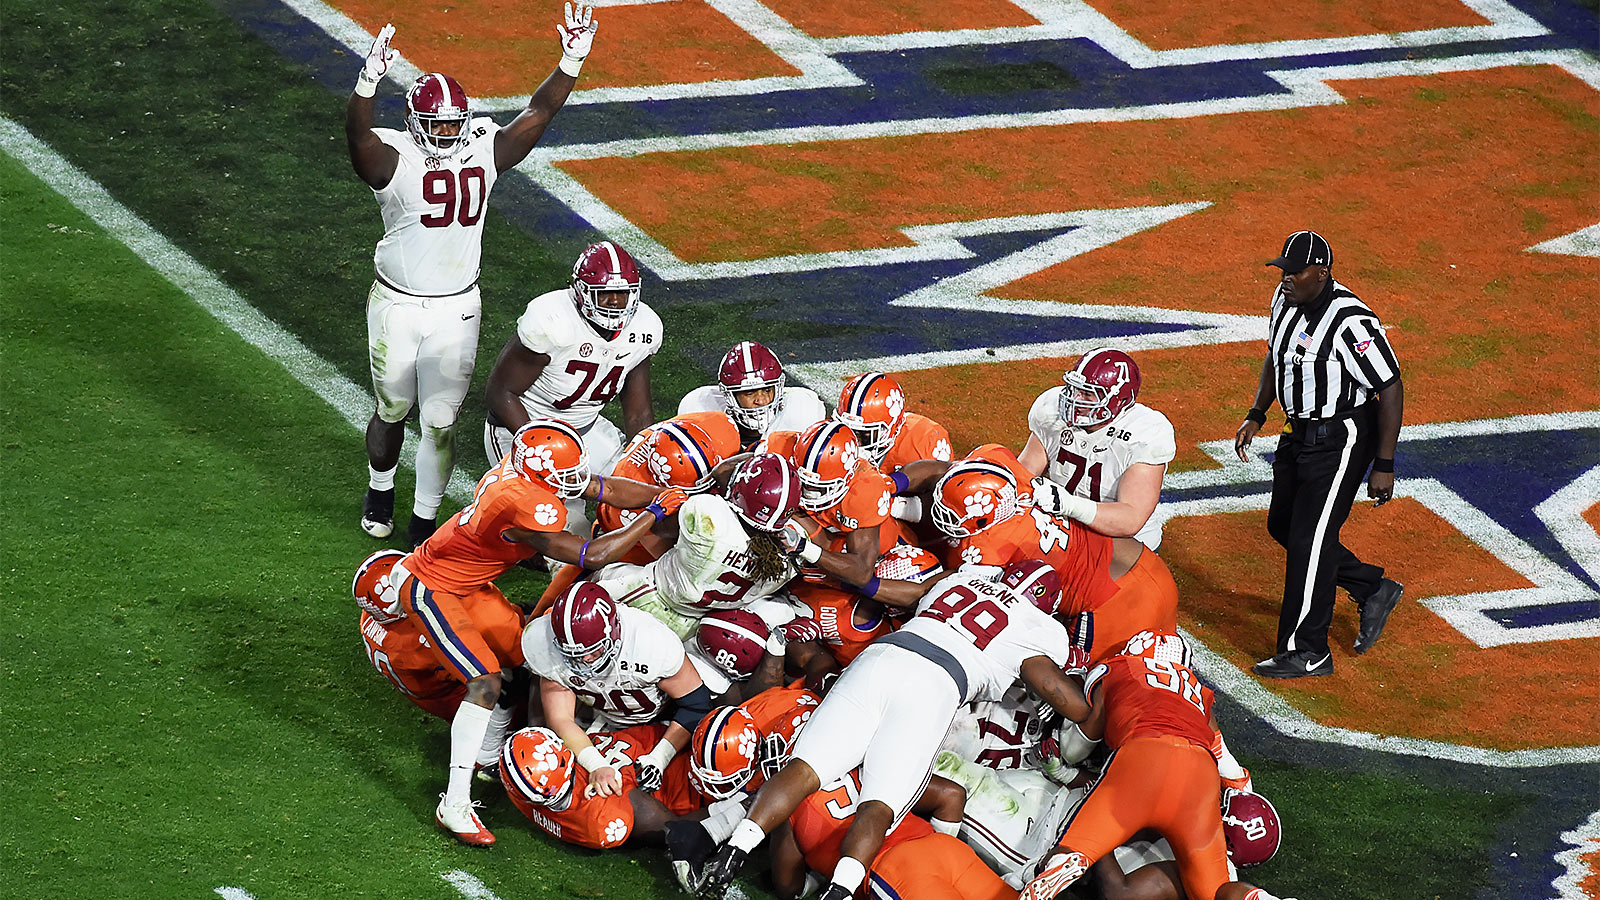 011216-cfb-Alabama-v-Clemson-pi-mp